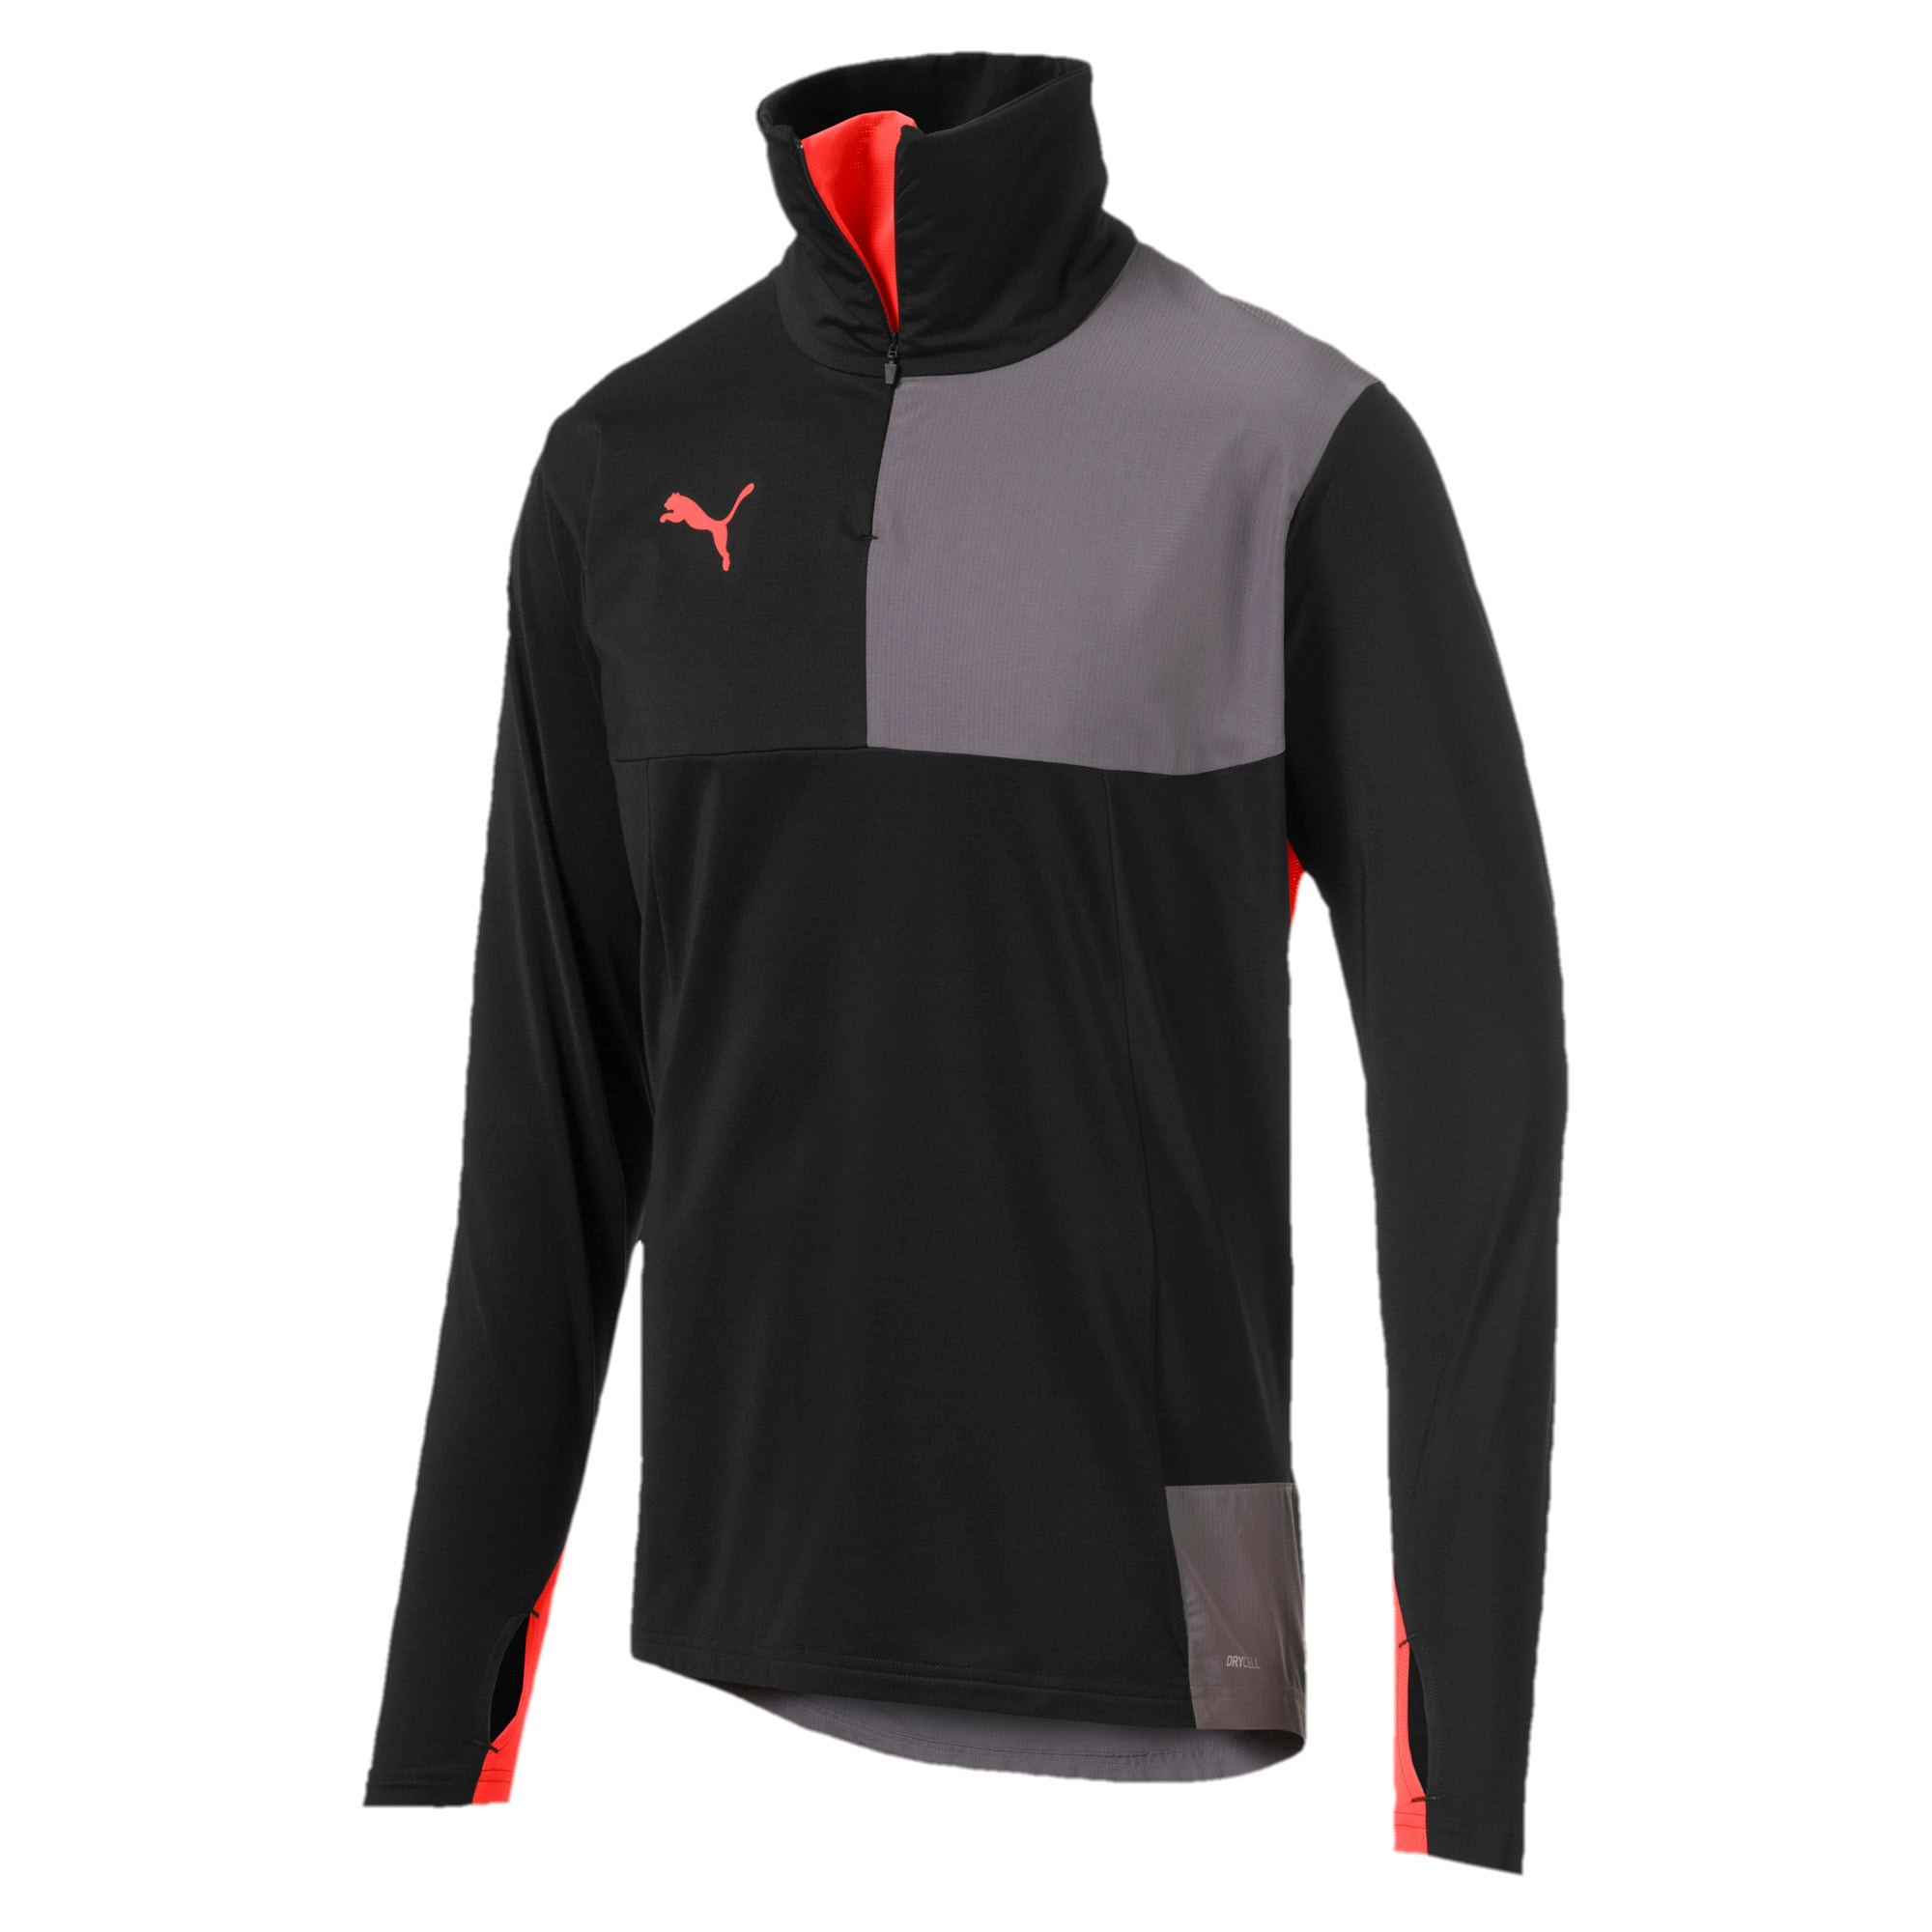 Thumbnail 4 of Quarter Zip Men's Top, Puma Black-Nrgy Red, medium